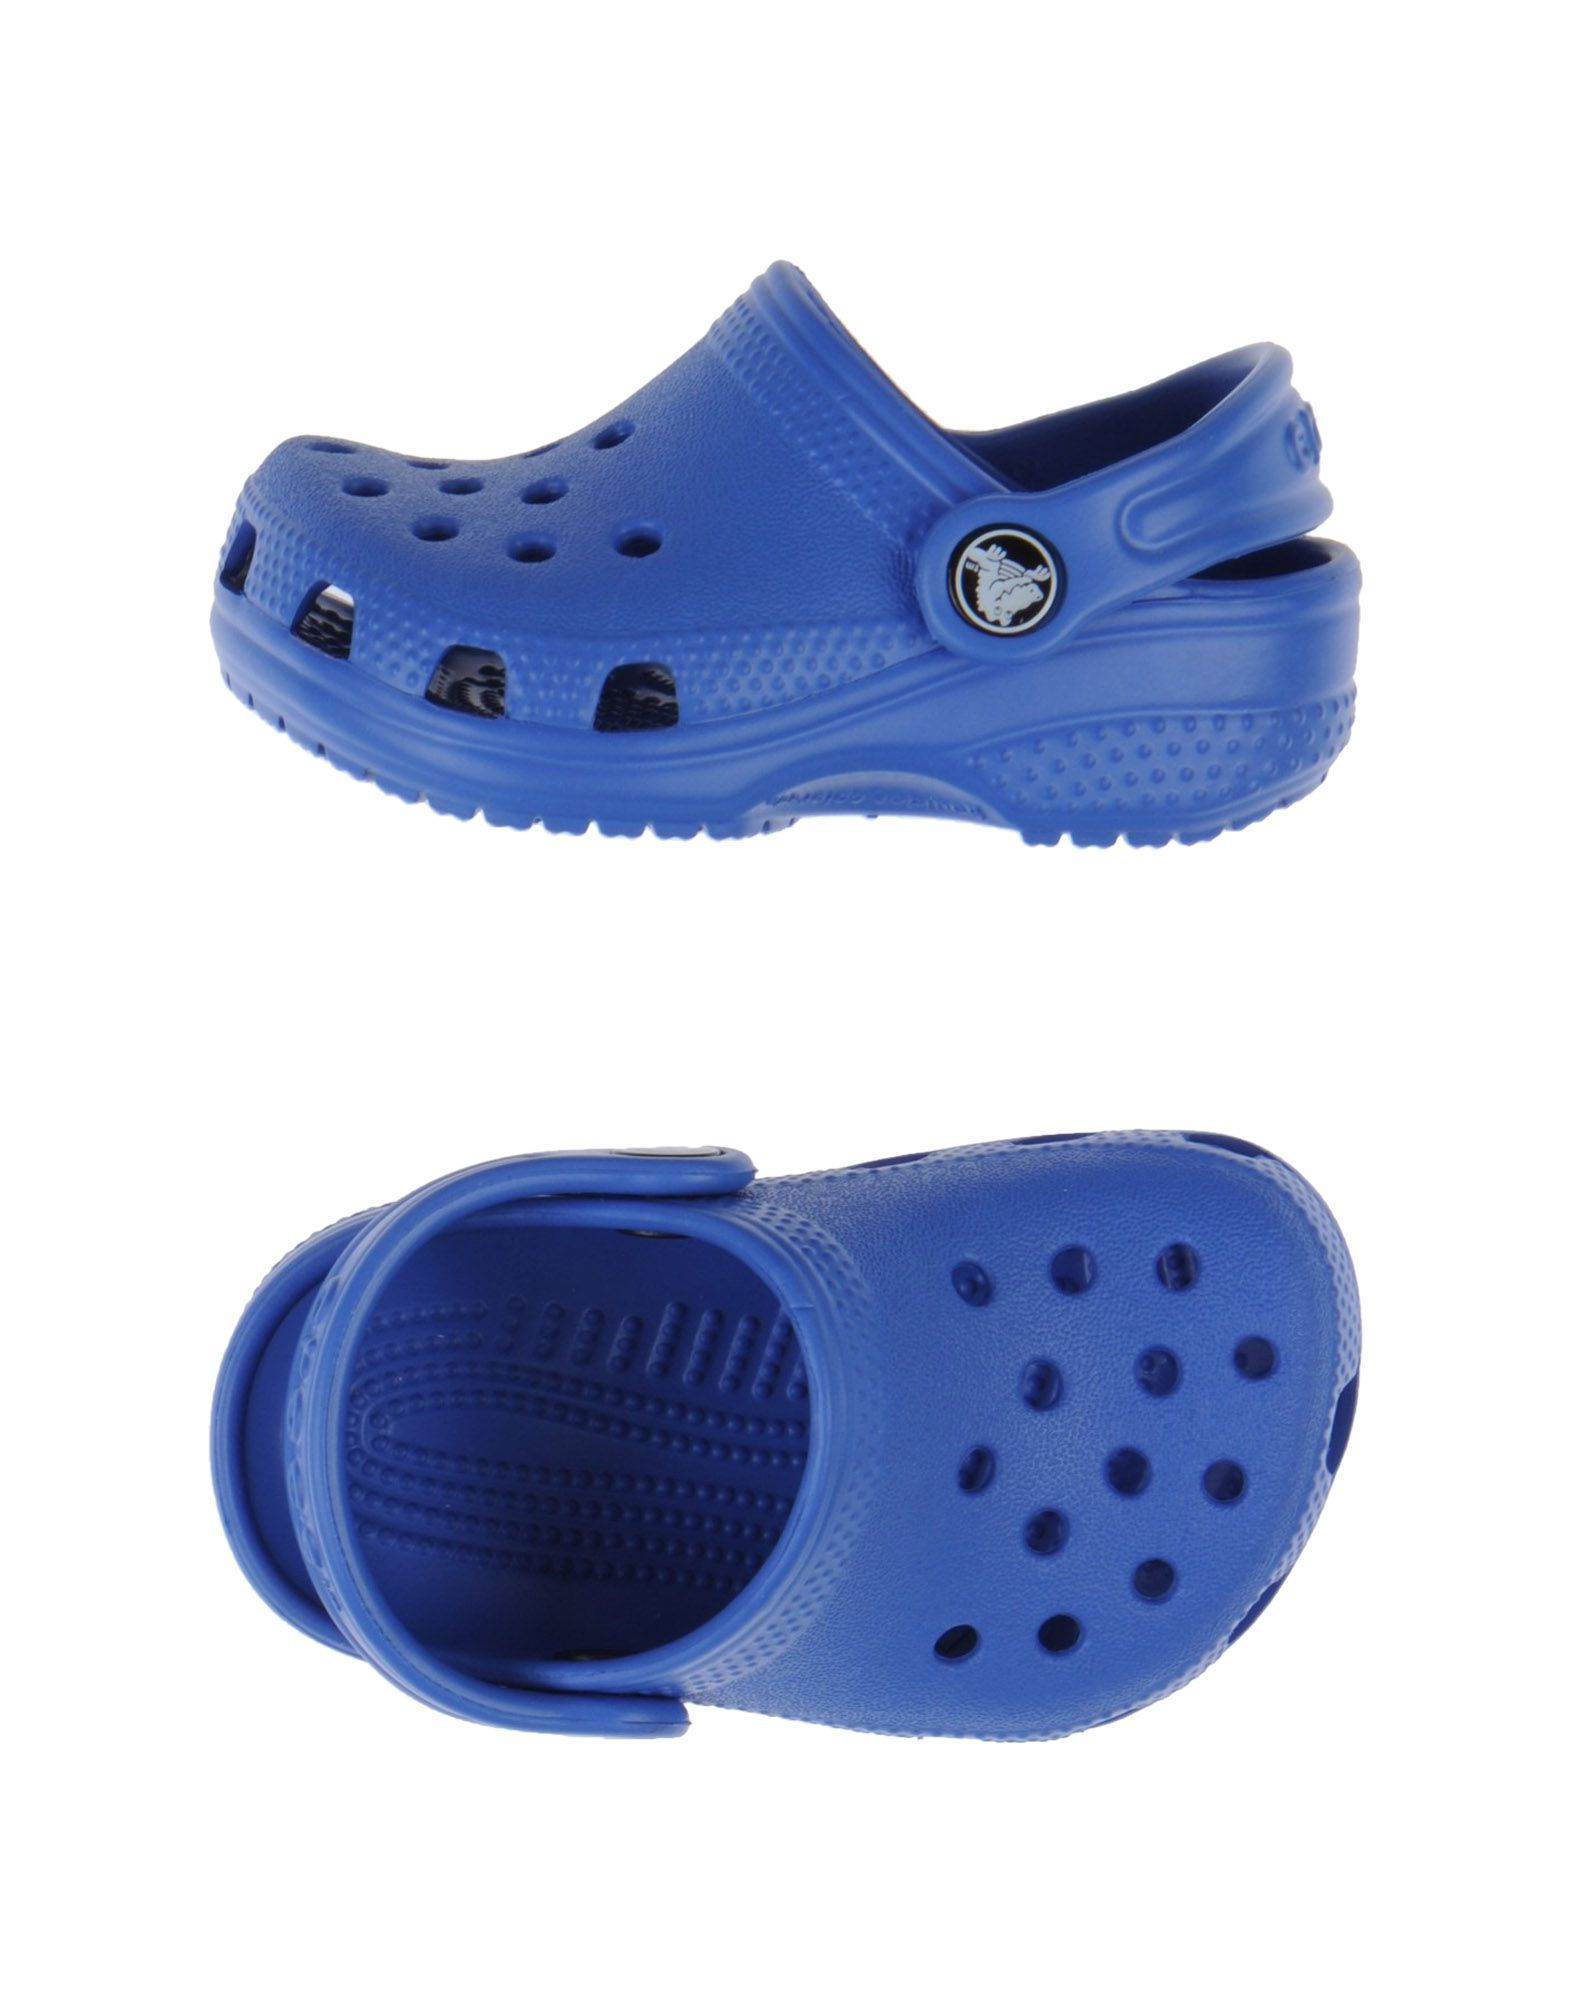 7859ebc963699 CROCS Slippers - Item 44638144  CROCSSlippersItem44638144